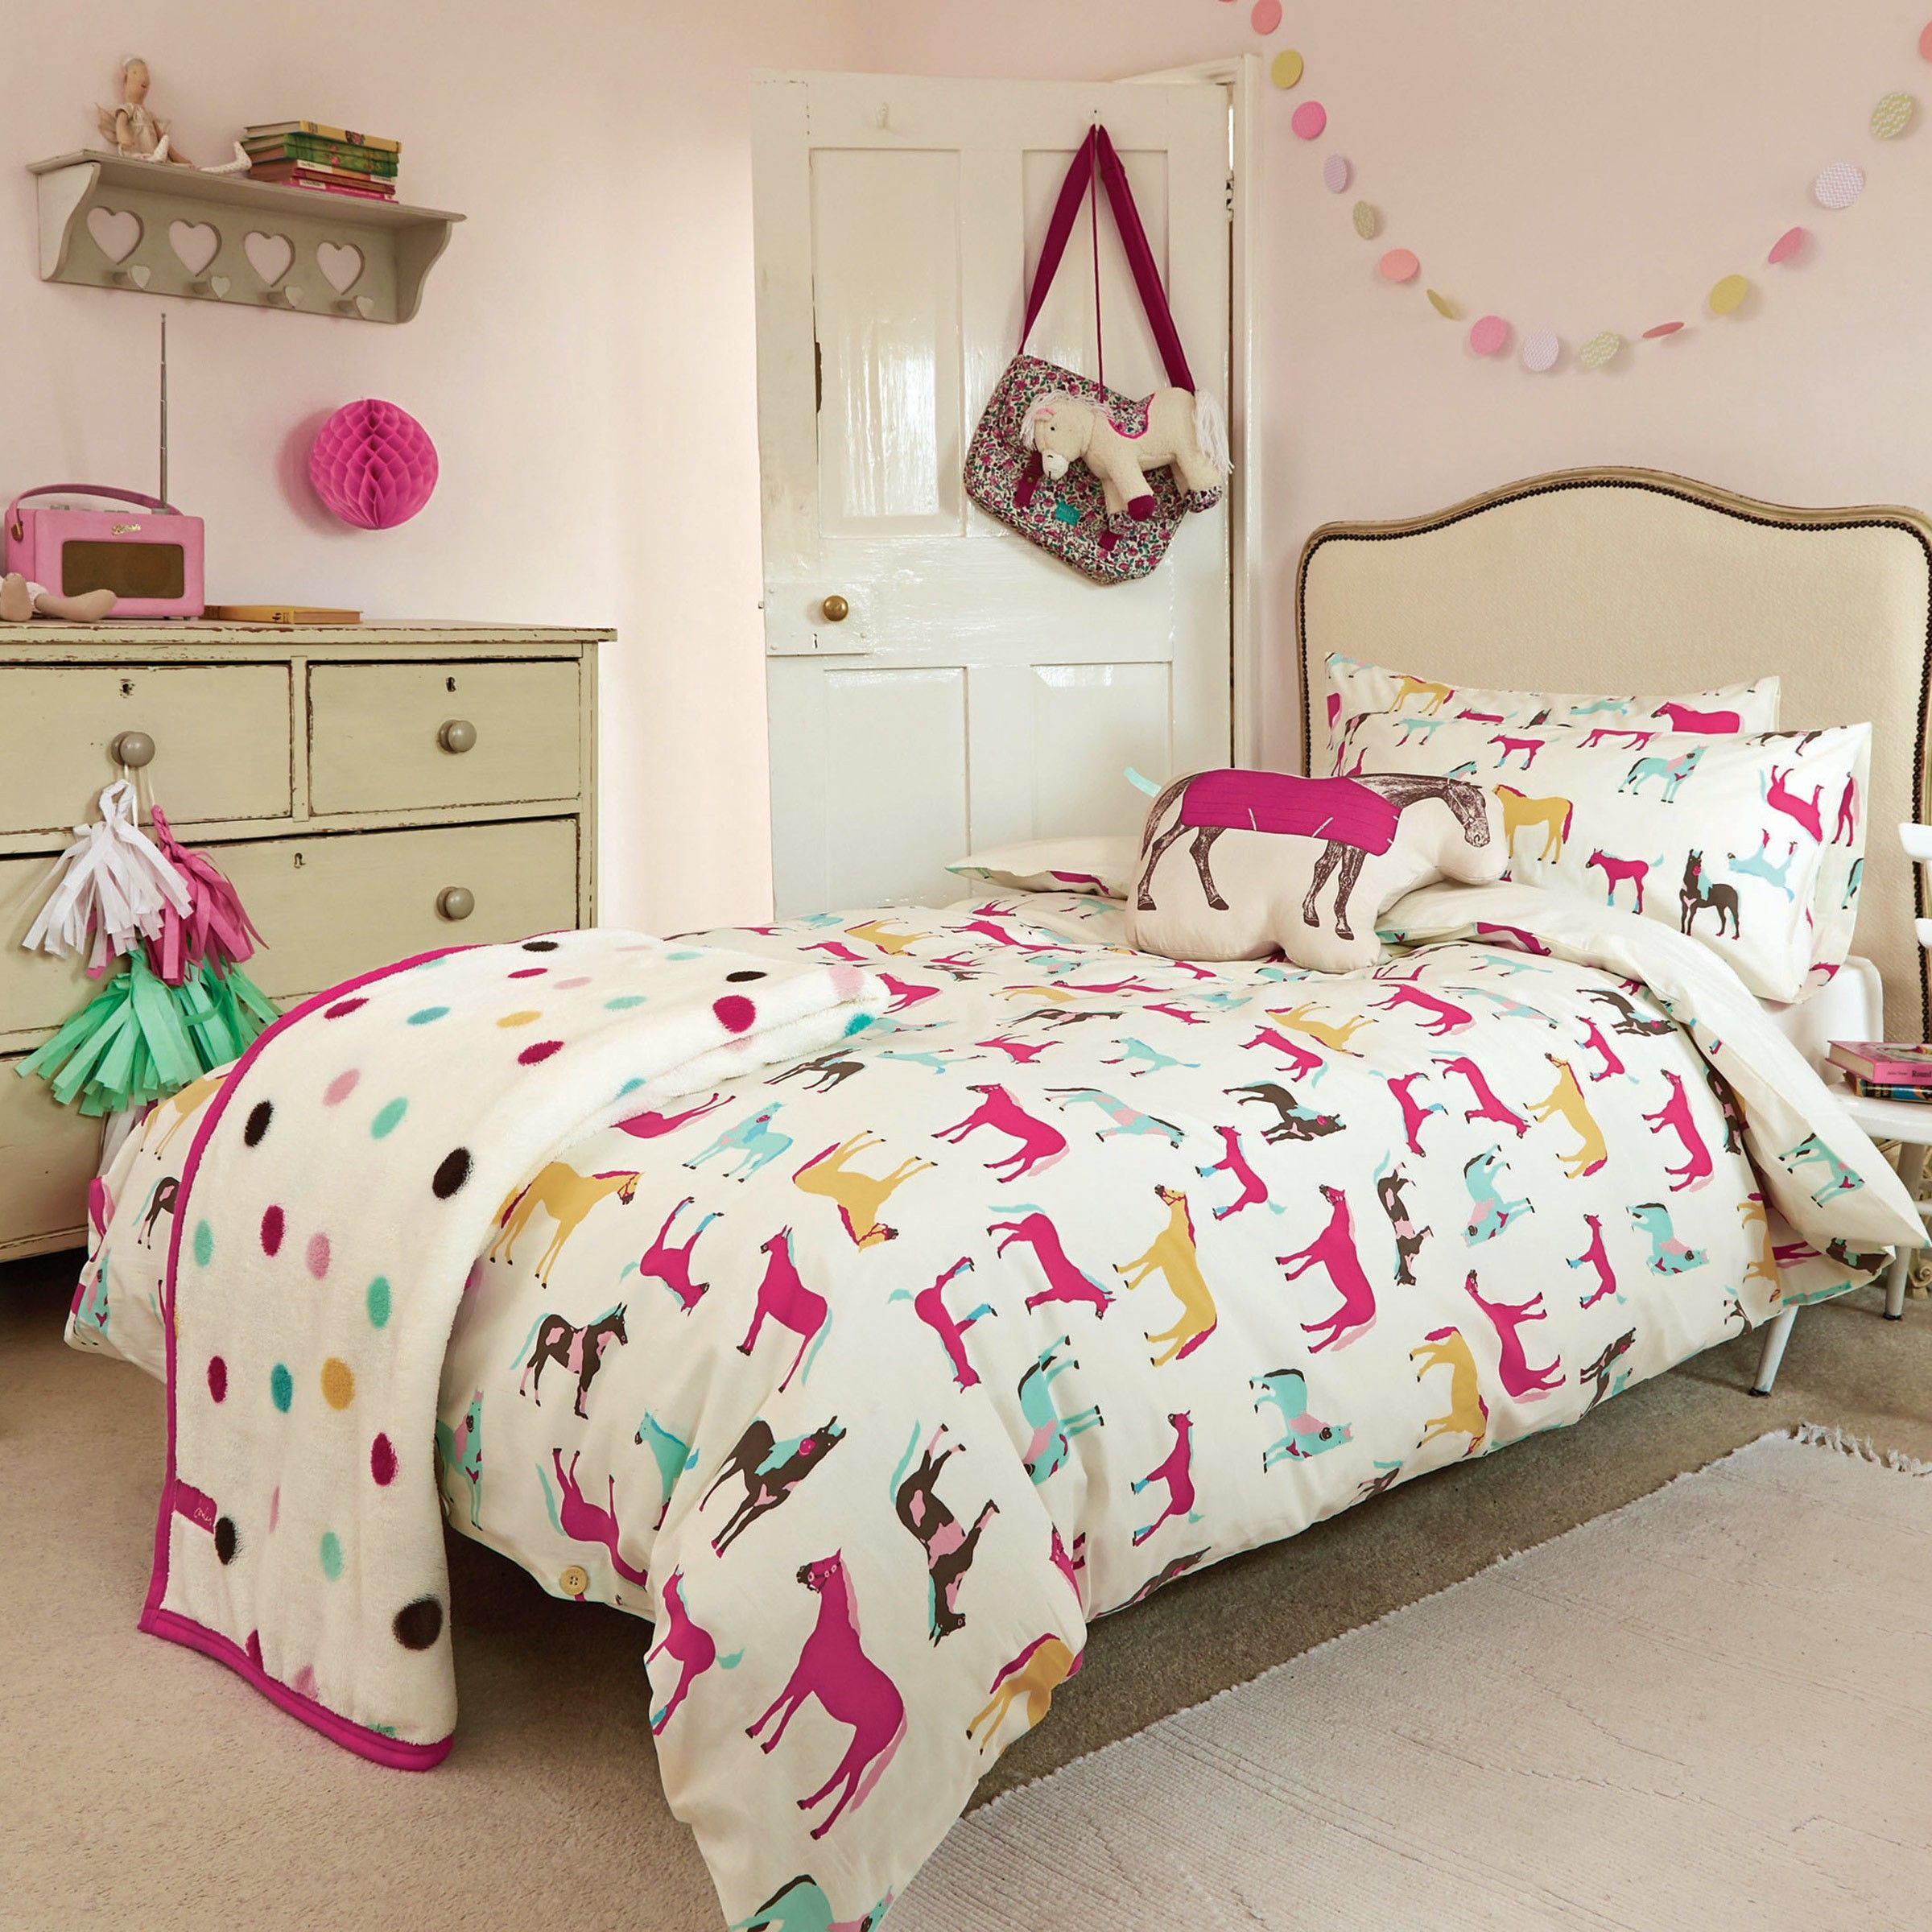 Horseplay is a new childrens bedding collection from Joules features a  lively horse print design. Horseplay Bedding by Joules   Sandra s house   Pinterest